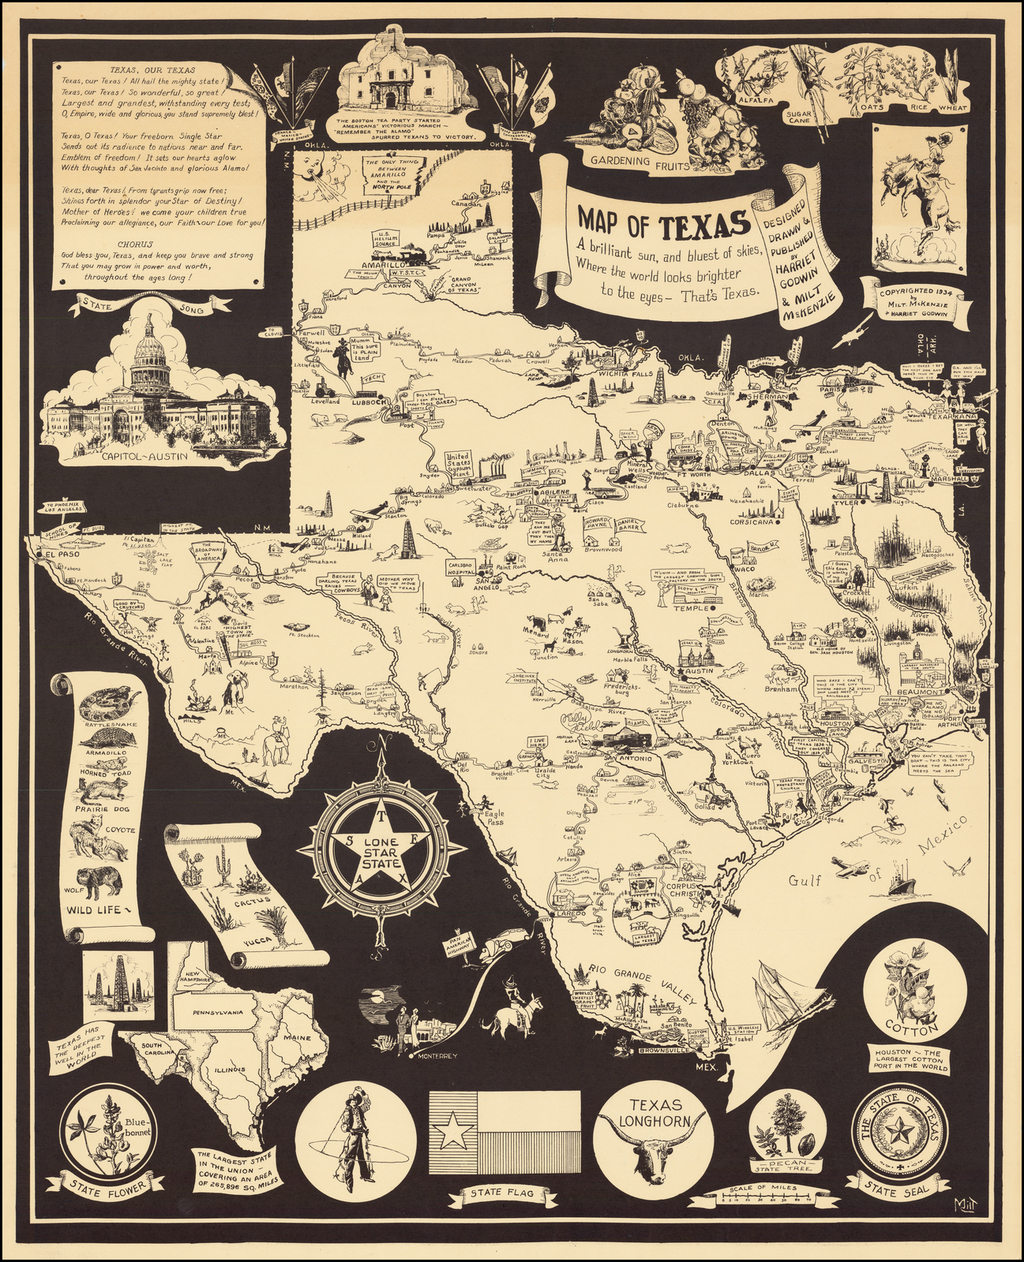 Map of Texas   A brilliant sun, and bluest skies, Where the world looks brighter to the eyes -- That's Texas. By Harriet Godwin  &  Milt McKenzie